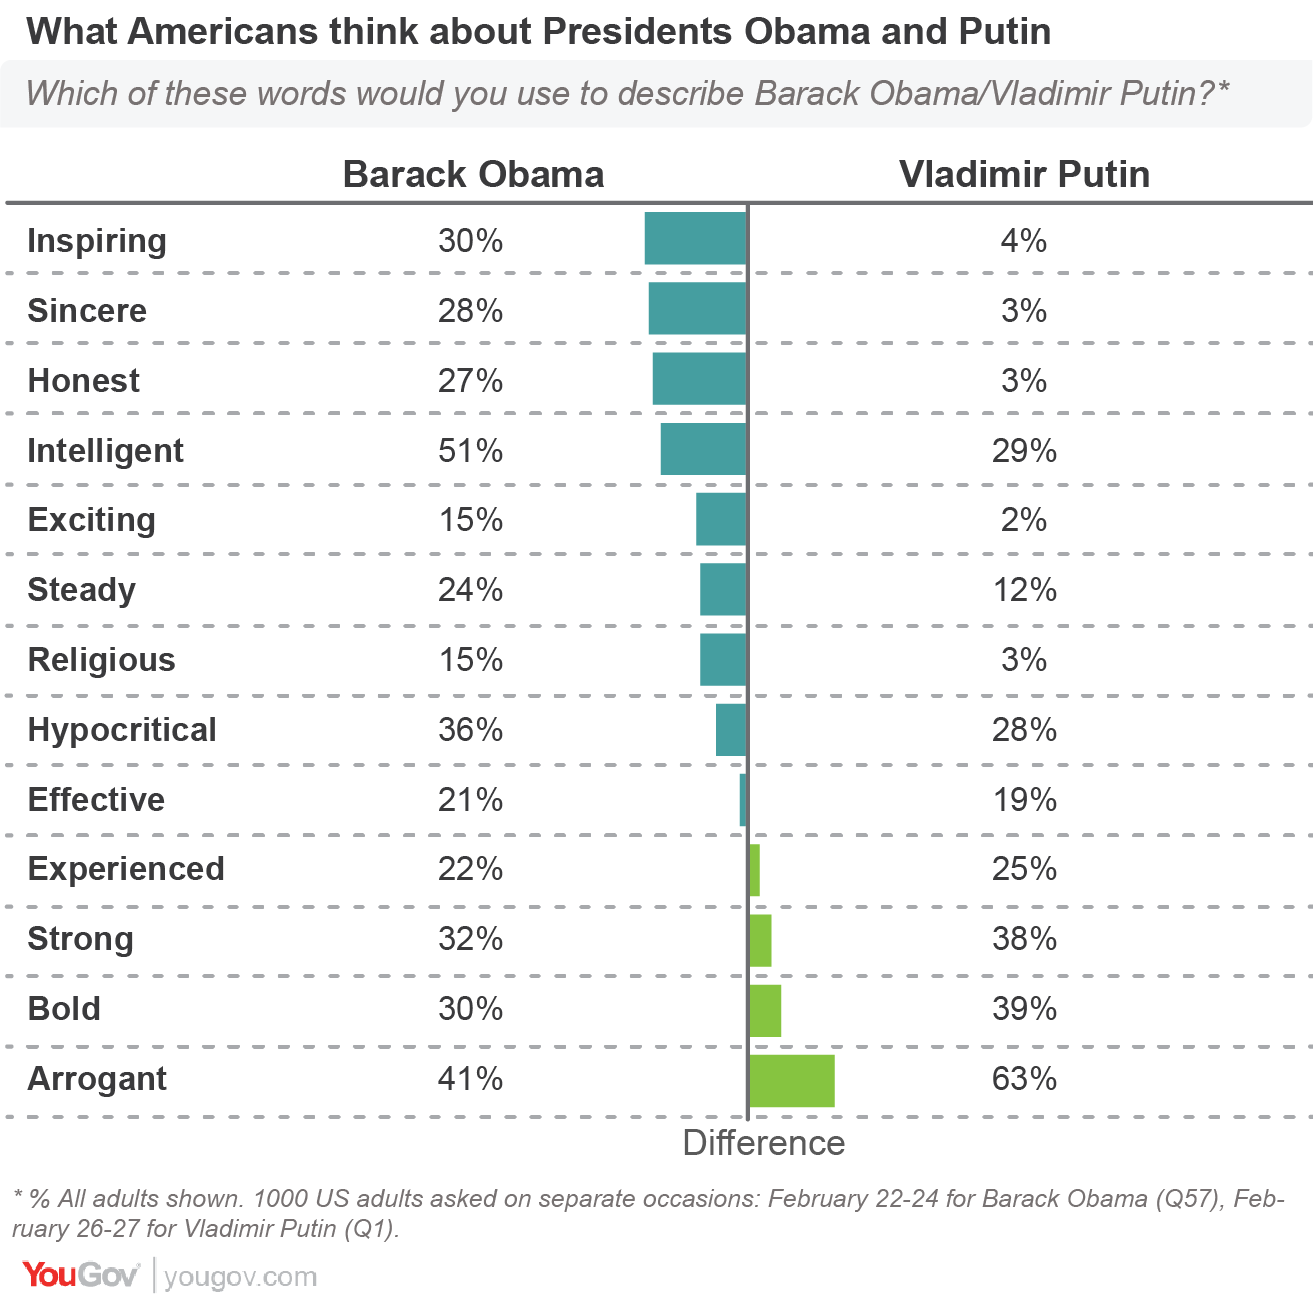 yougov personality profile vladimir putin and barack obama describe their own president in more positive terms than putin except when it comes to the russian president s perceived strength and boldness